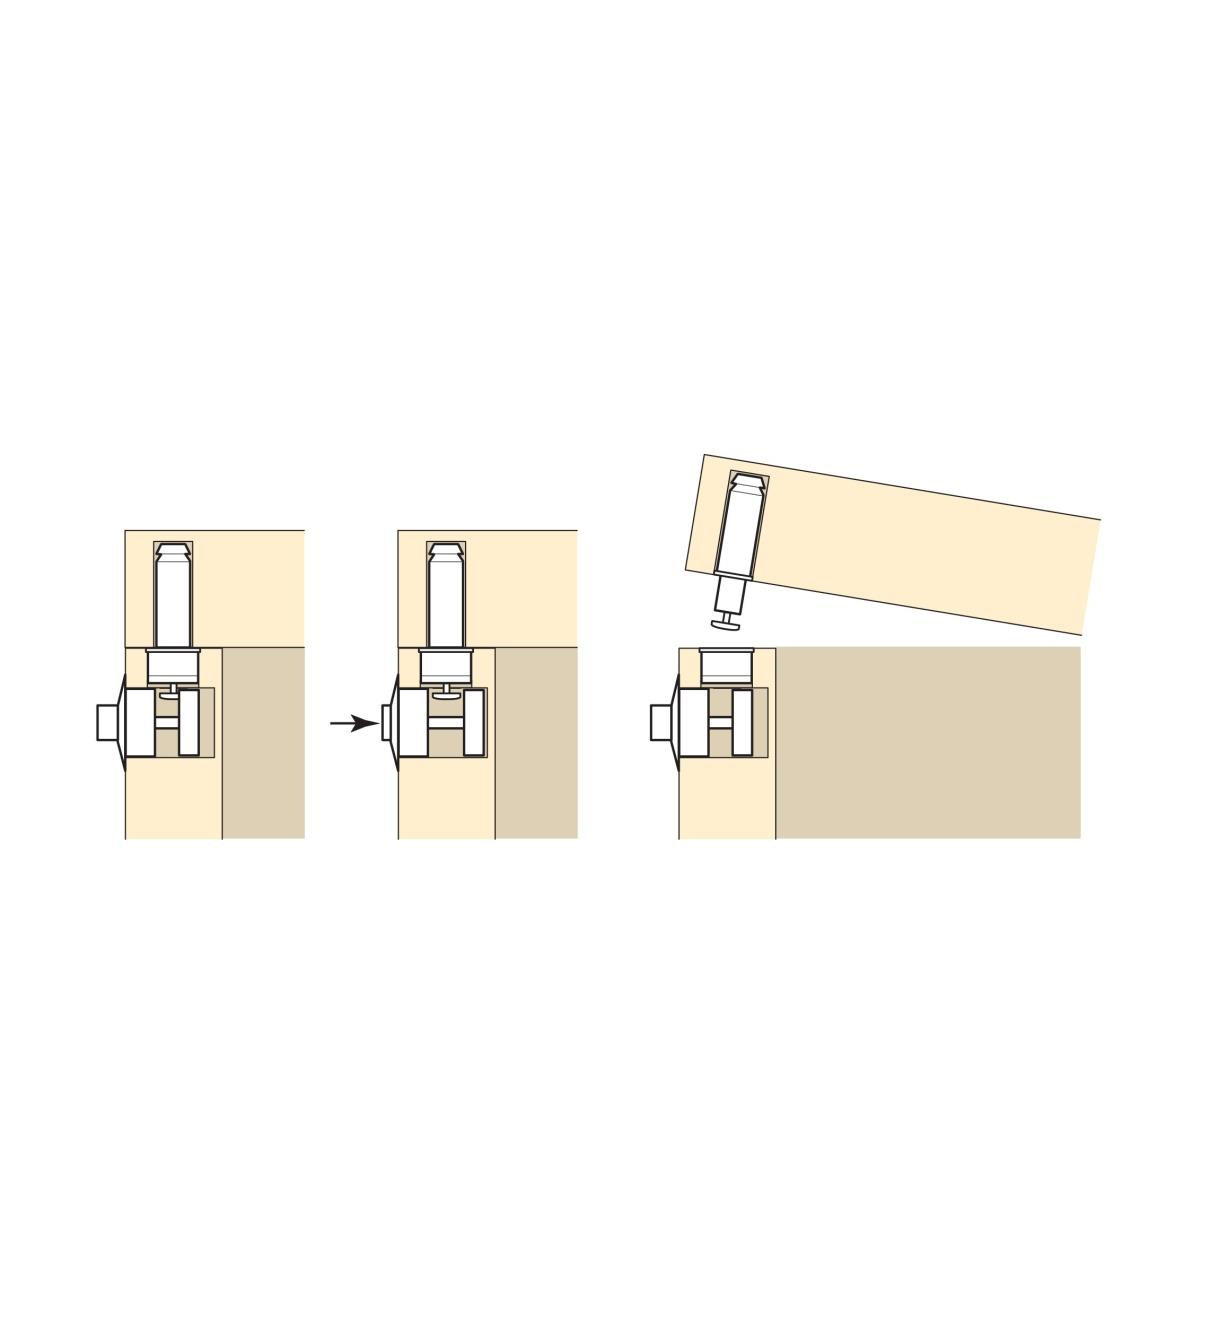 Series of diagrams showing how to use a button lock to open a box lid